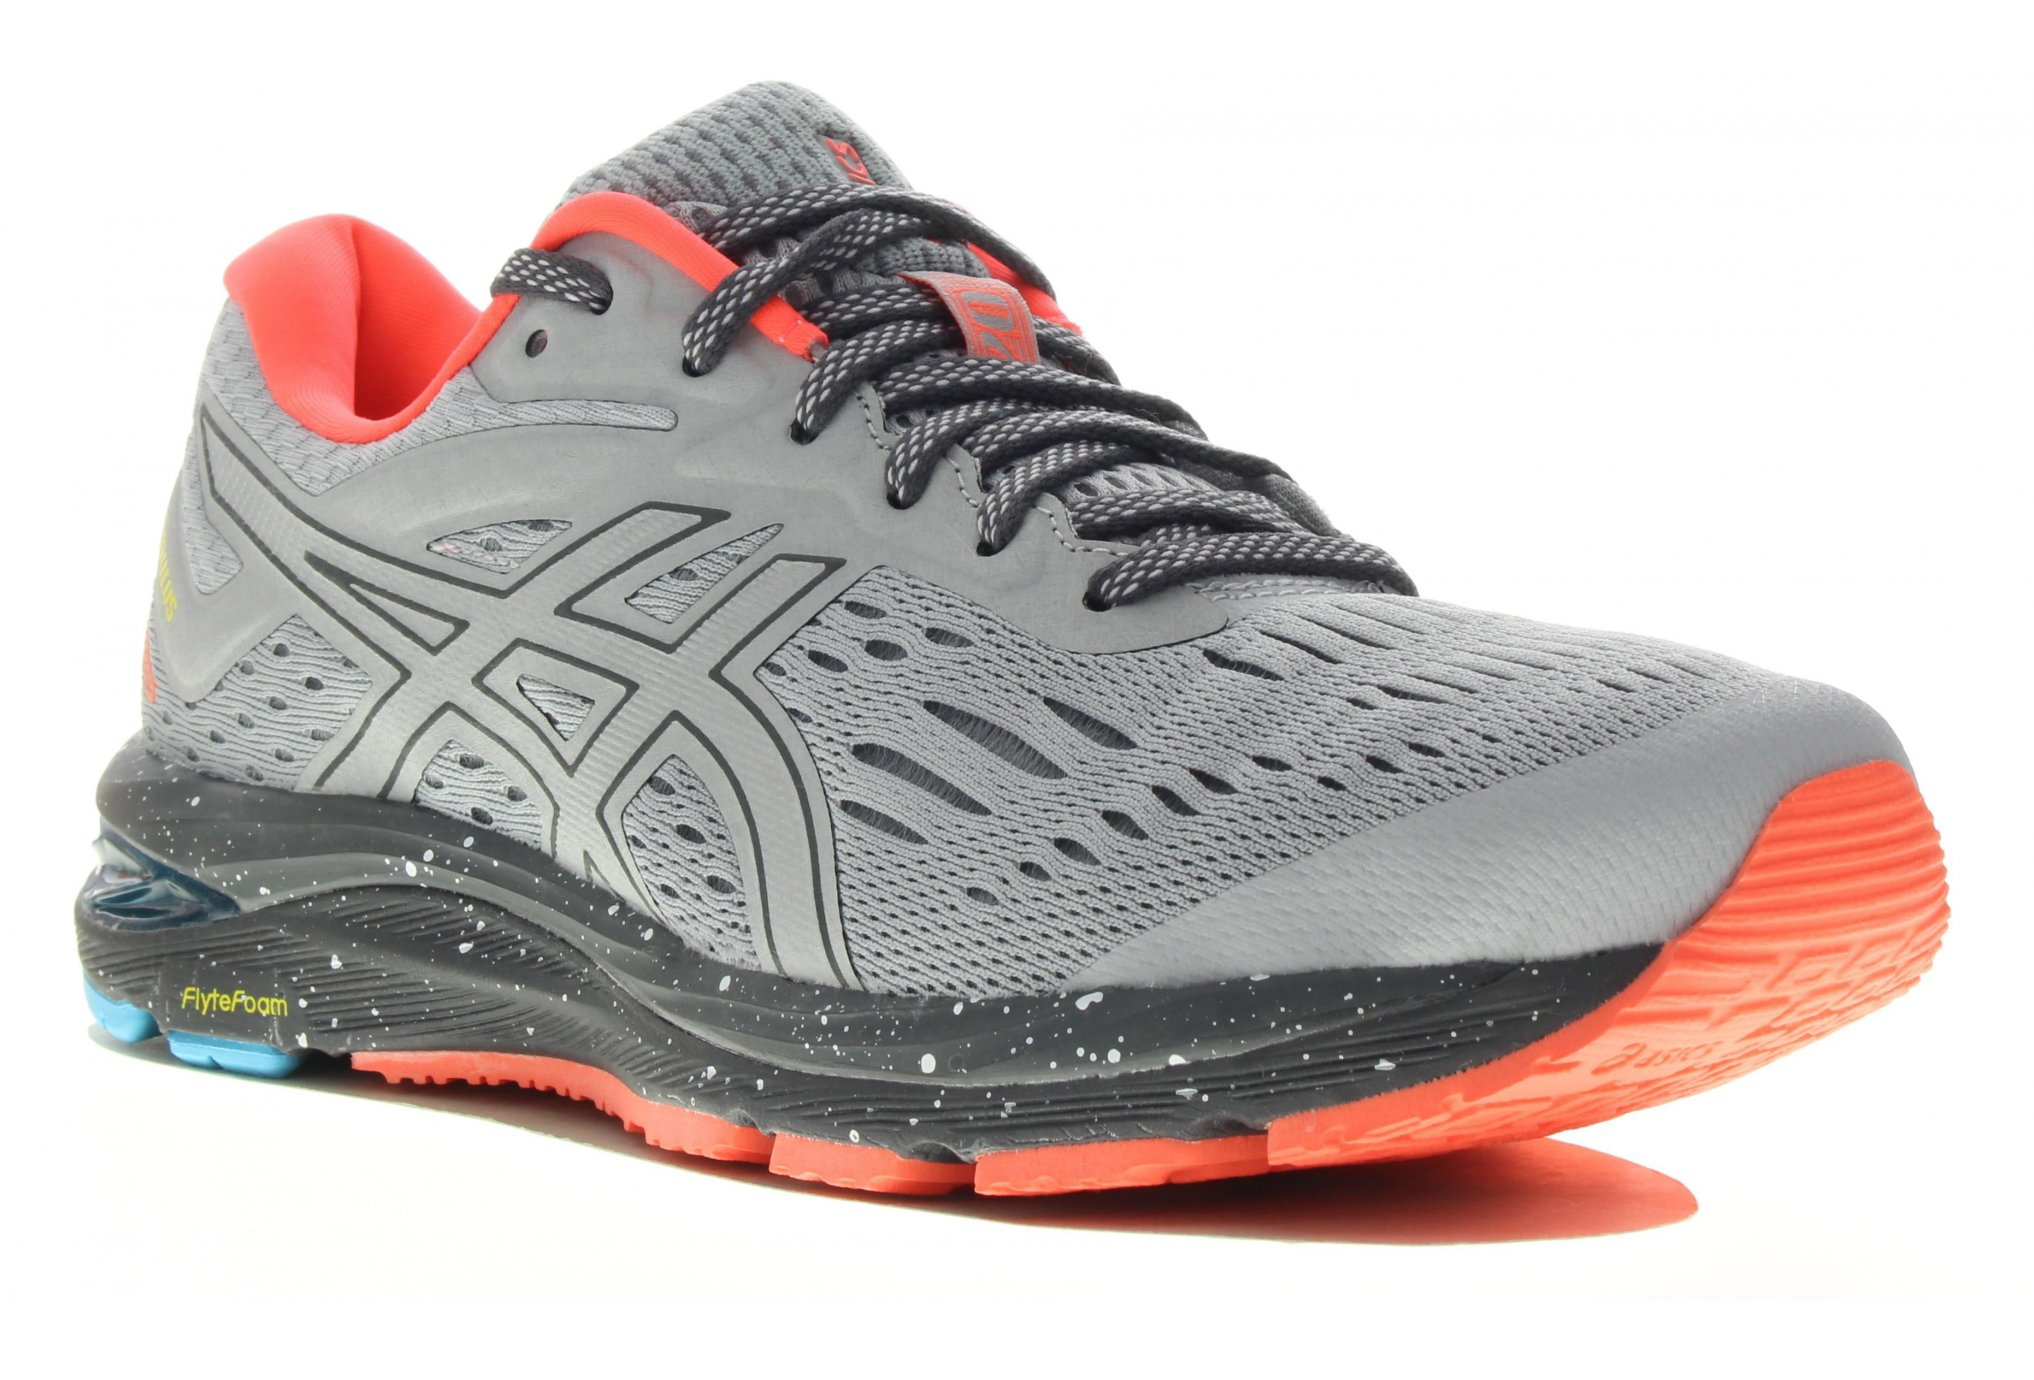 Asics Gel-Cumulus 20 Limited Edition Chaussures running femme